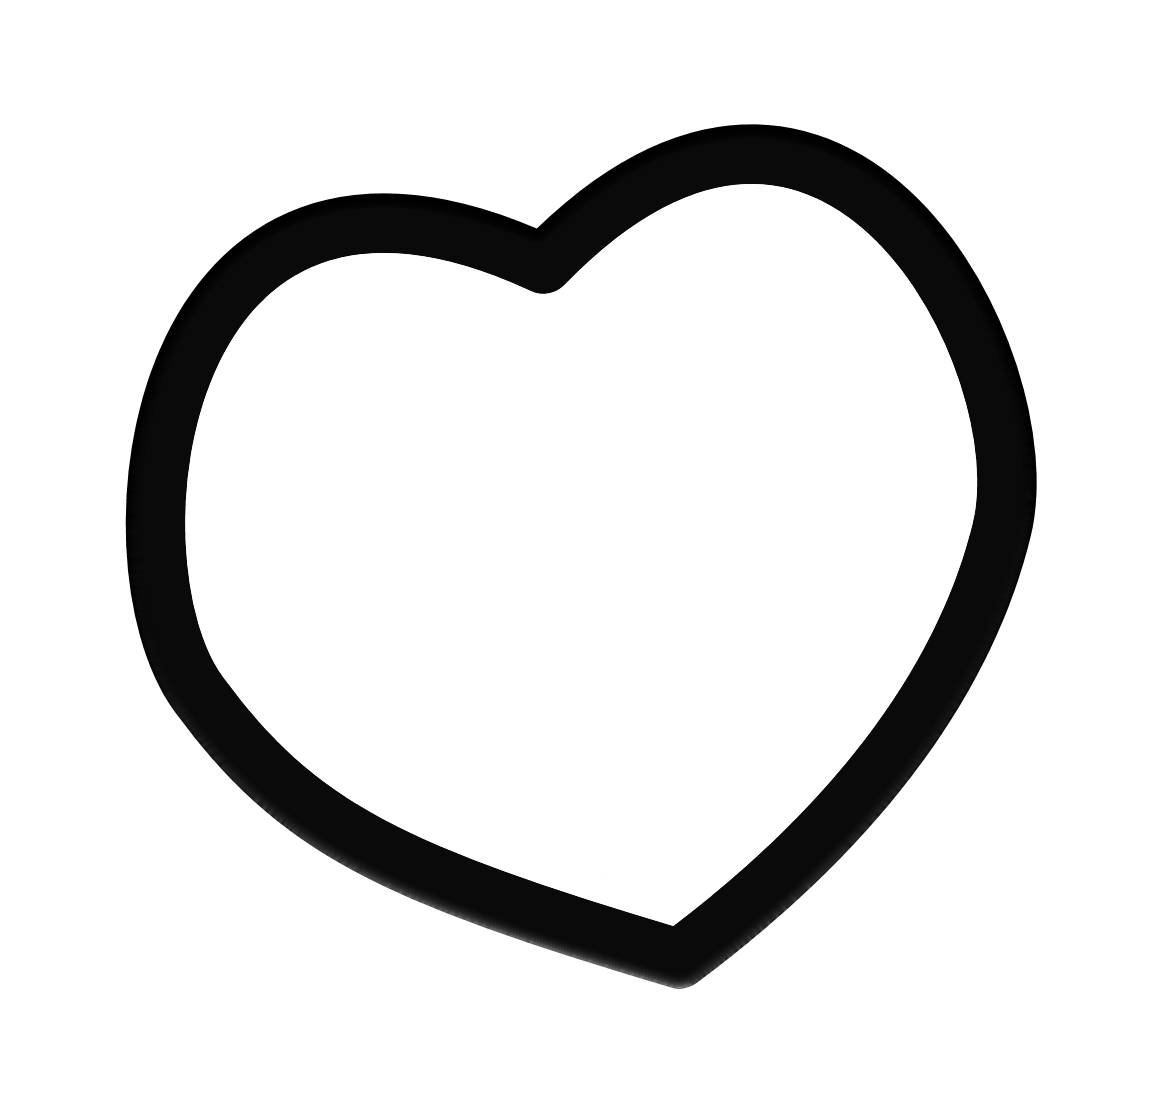 Love heart clipart black and white banner black and white stock Heart Frame Clip Art Black And White | Clipart Panda - Free Clipart ... banner black and white stock